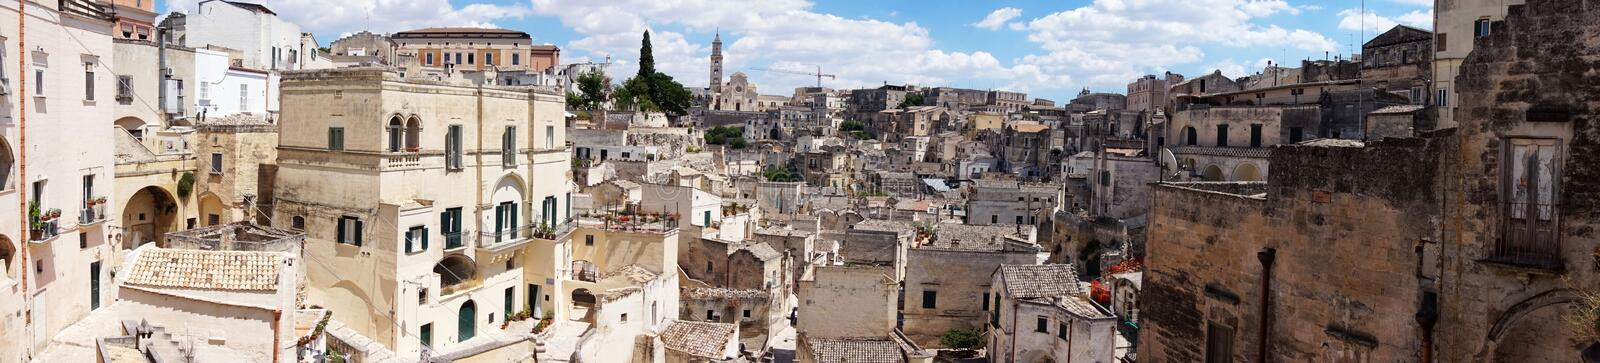 Amazing panoramic view from a balcony of typical stones Sassi di Matera and church of Matera UNESCO European Capital of Culture stock images